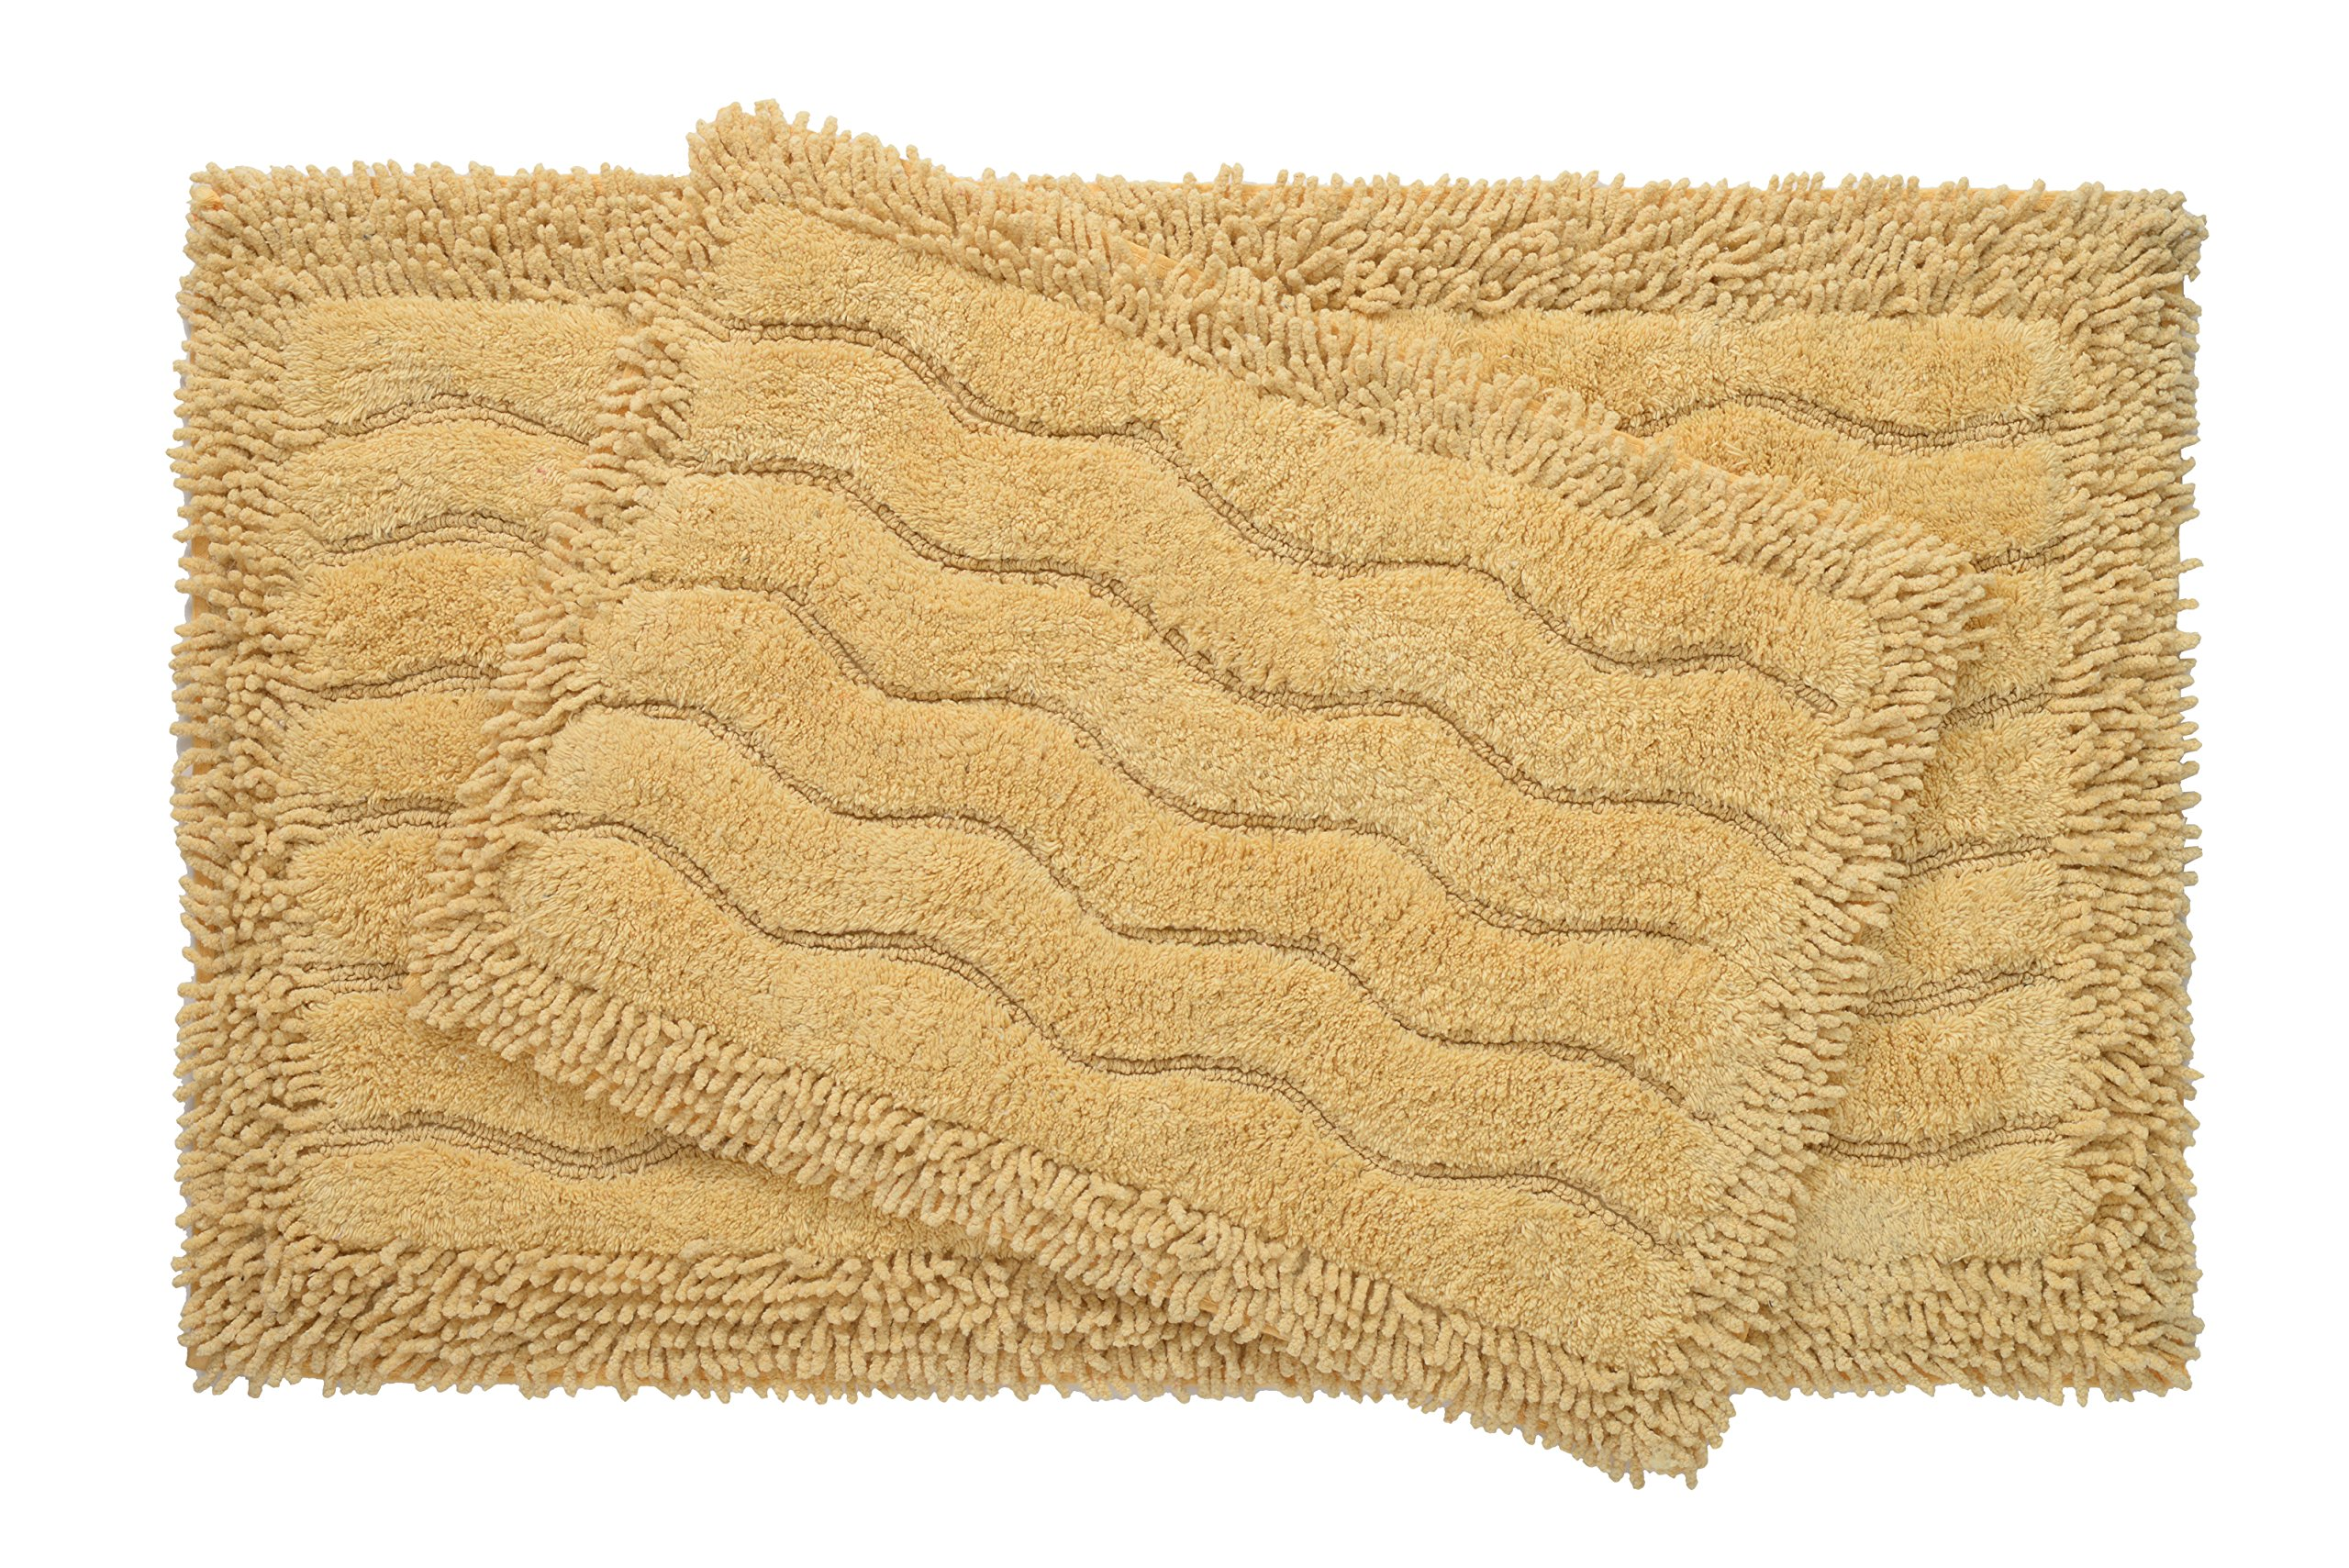 Bed Bath Fashions Medallion Collection 2 Piece 100% Cotton Bath Rug Set with Non-Skid Spray Latex Backing - Super Soft Luxurious Plush Shower Mats - 6 Colors (Gold)